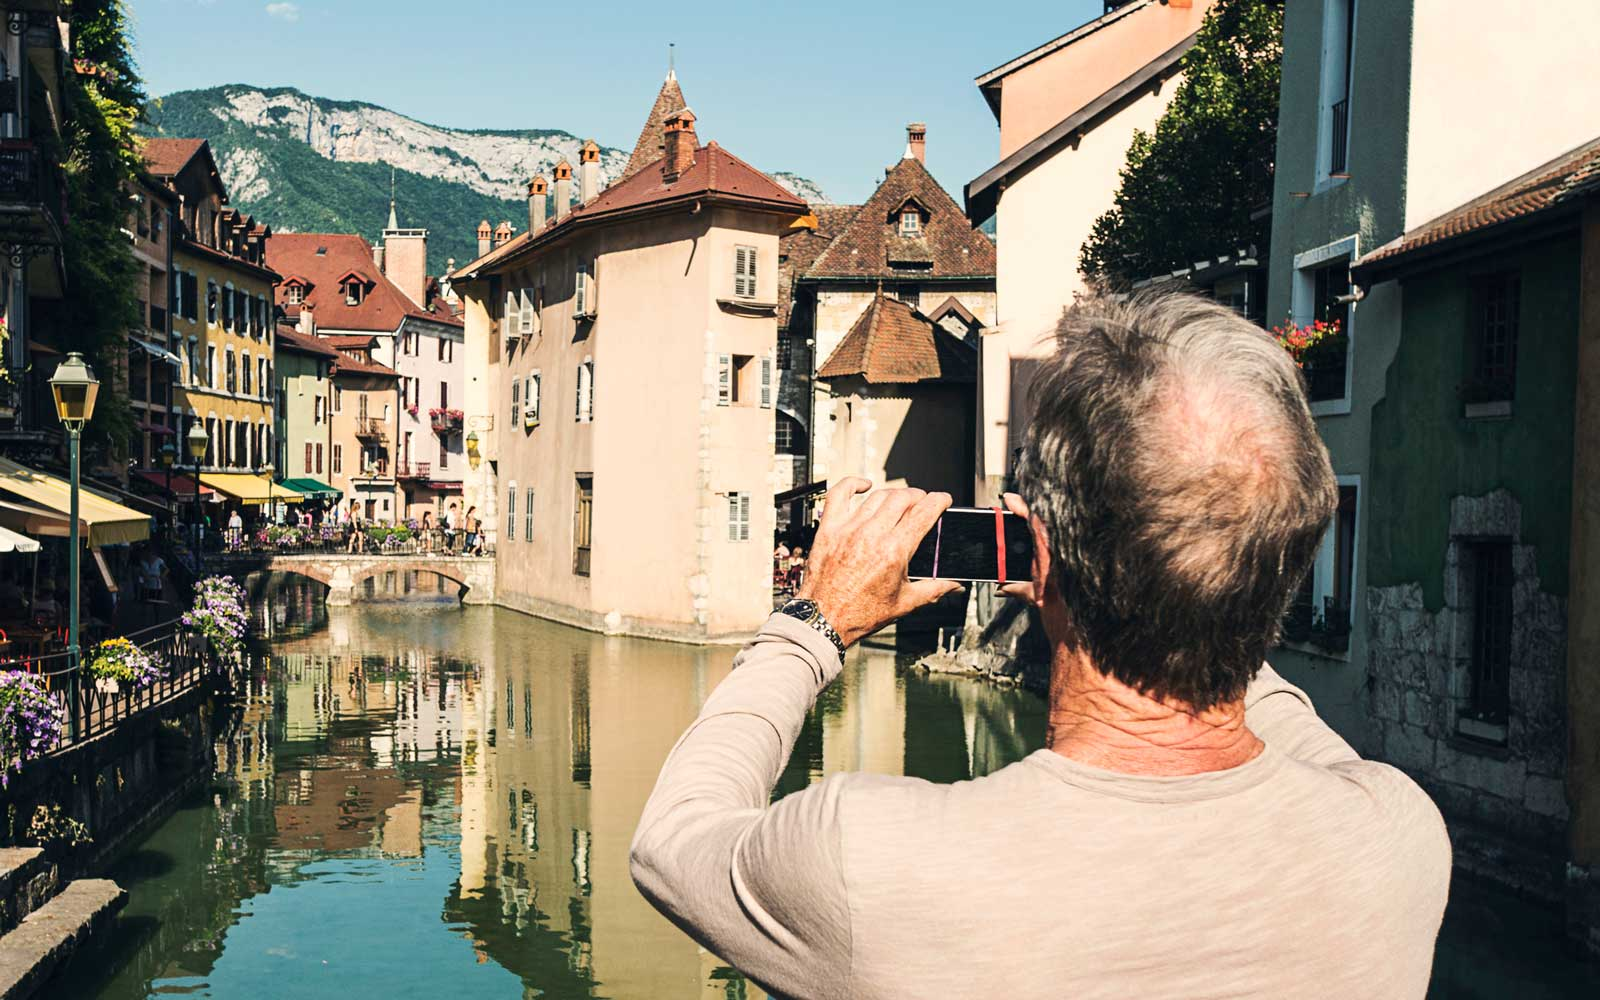 Senior Man taking photo on Smart Phone in Annecy, France